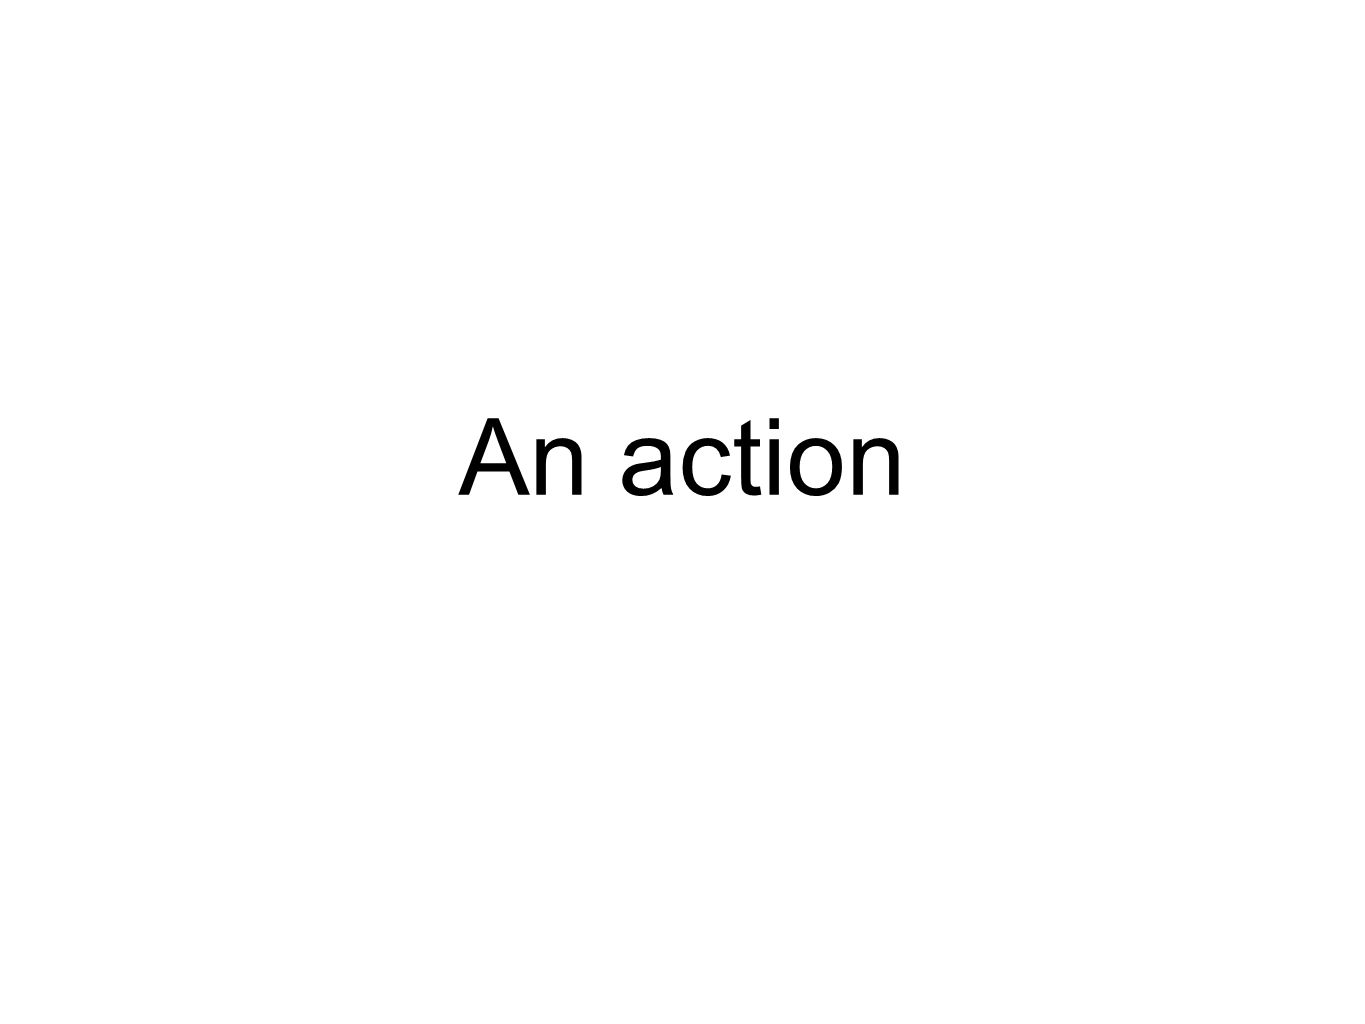 An action